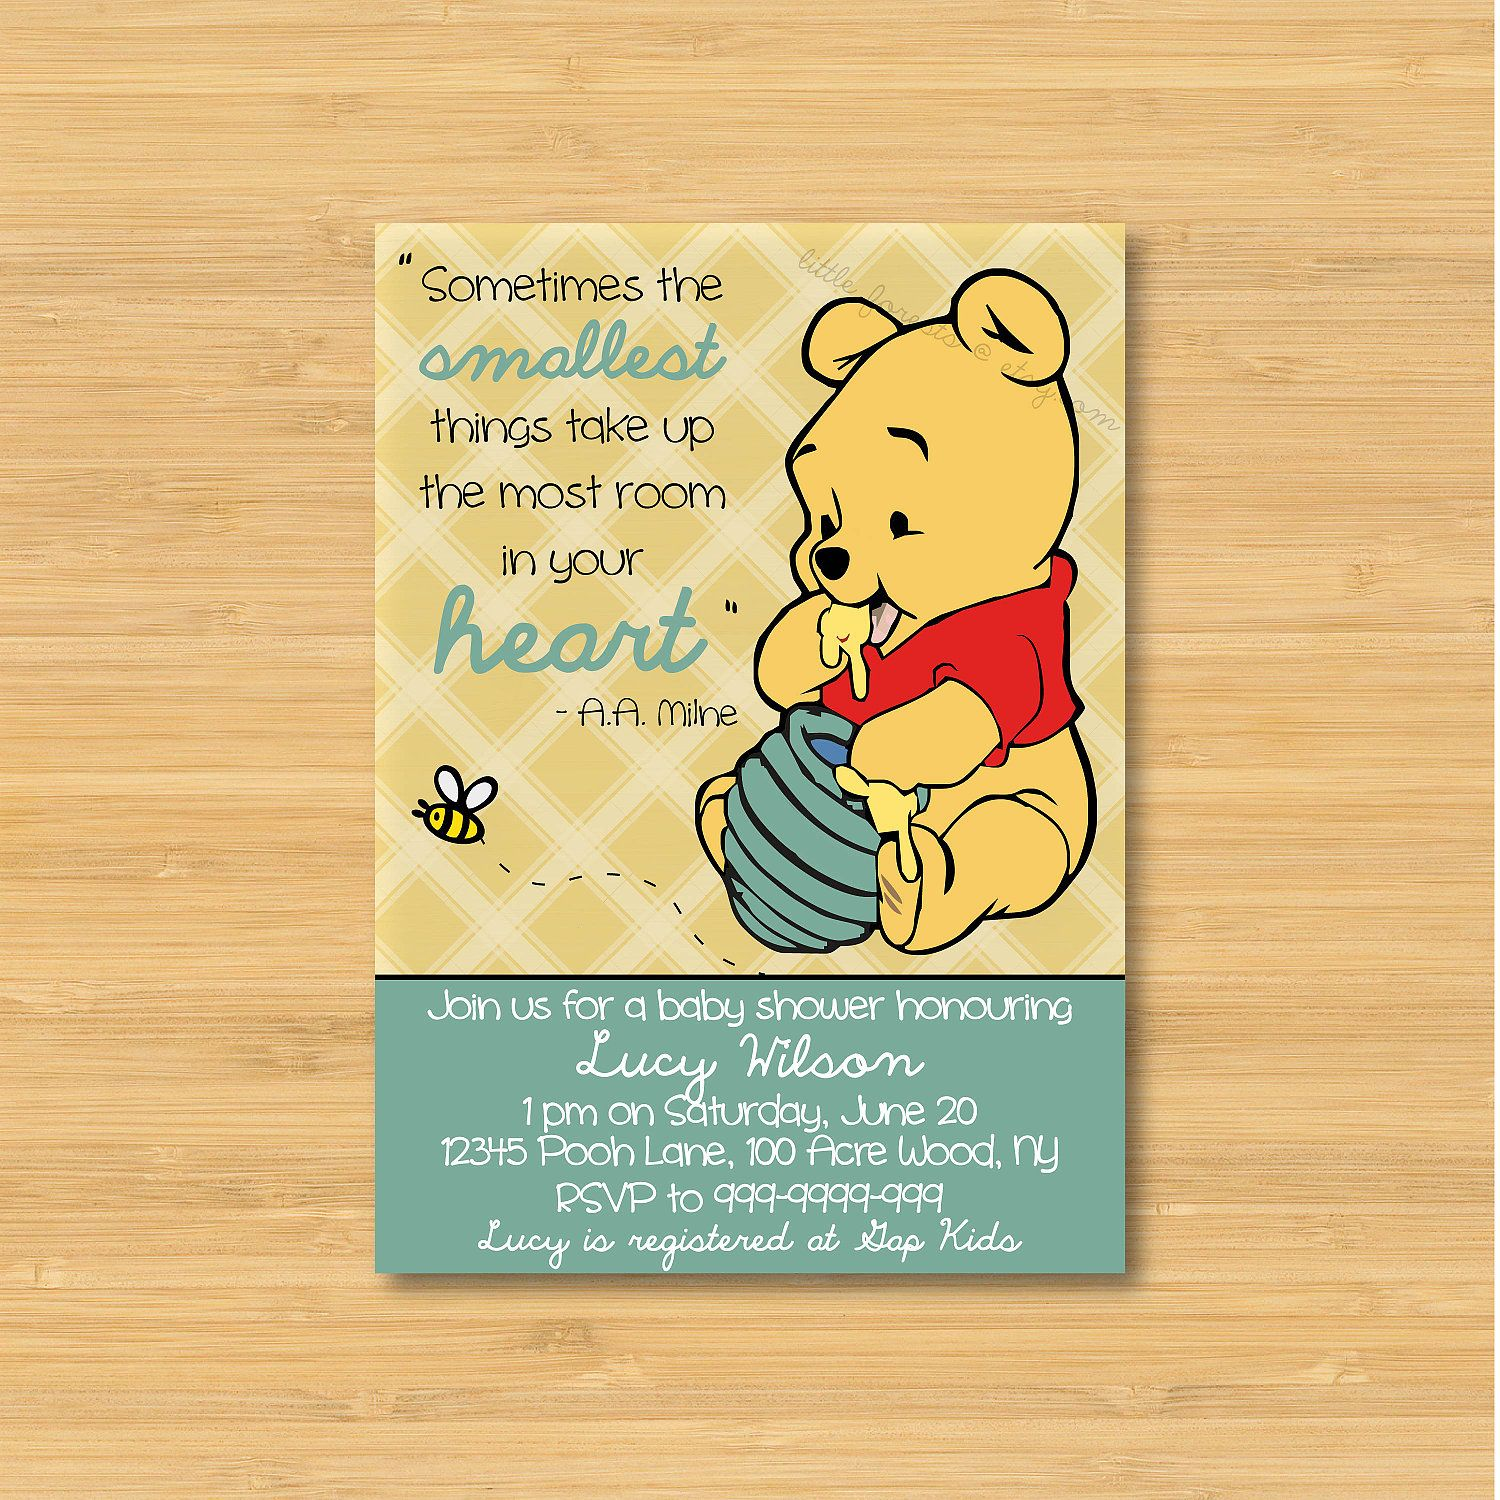 winnie the pooh baby shower invitation, Baby shower invitations